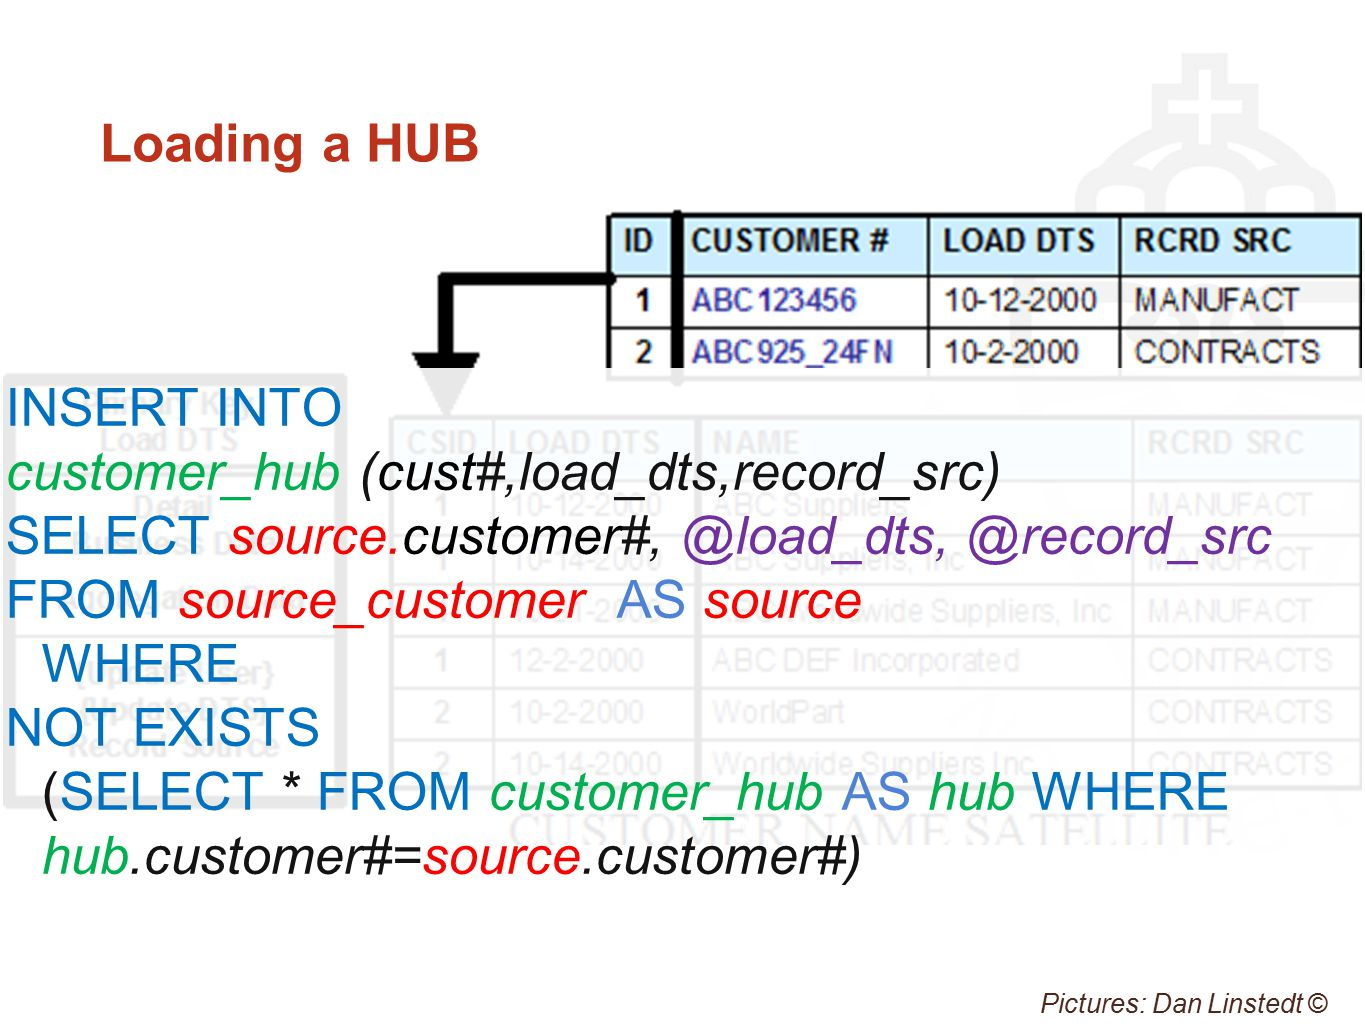 Loading a HUB Pictures: Dan Linstedt © INSERT INTO customer_hub (cust#,load_dts,record_src) SELECT source.customer#, @load_dts, @record_src FROM source_customer AS source WHERE NOT EXISTS (SELECT * FROM customer_hub AS hub WHERE hub.customer#=source.customer#)